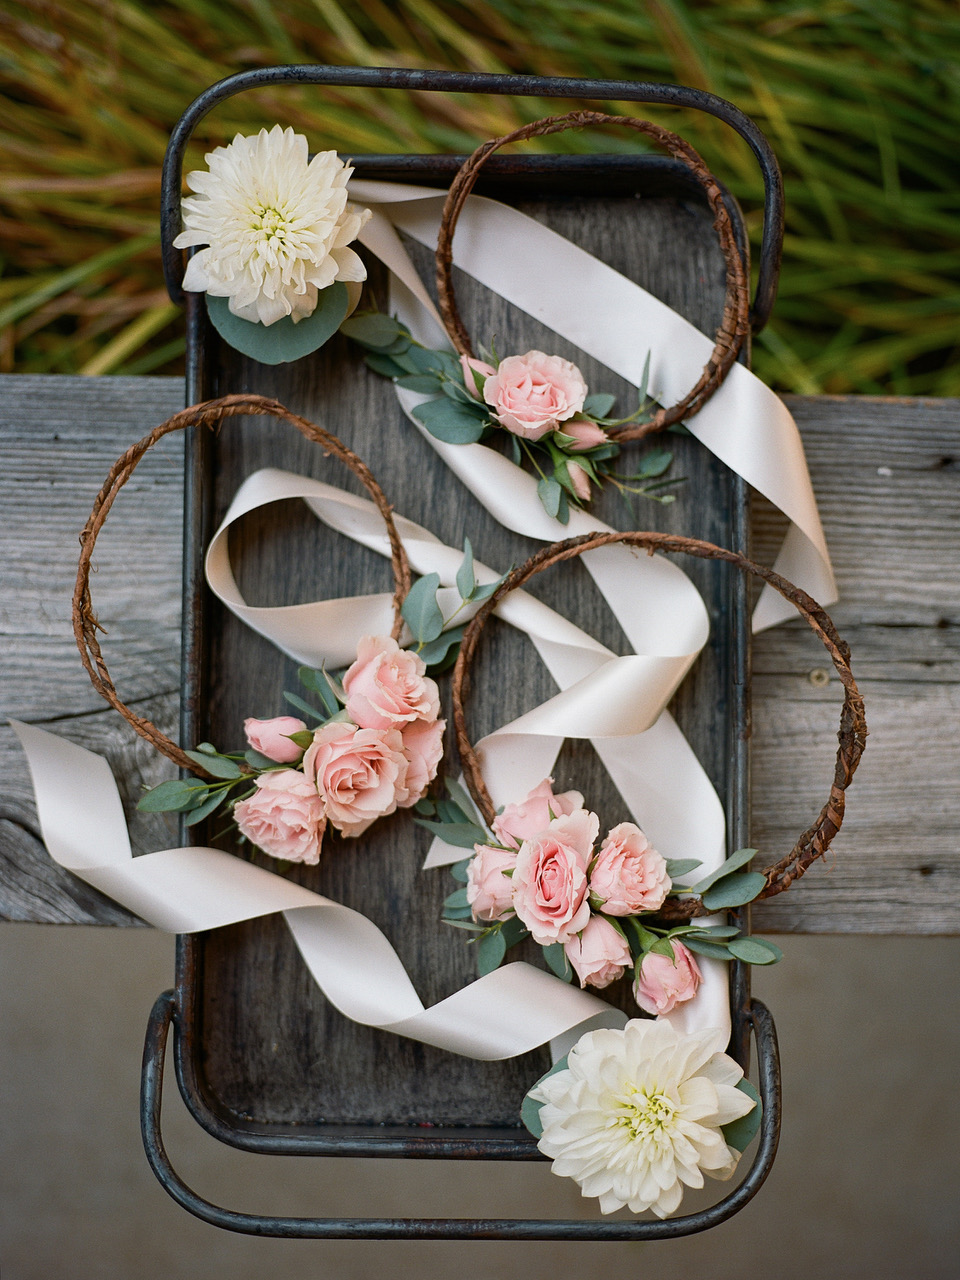 Delicate Floral Crowns for Flower Girls.   Flowers by Flower Buds. Photo by Davy Whitener Photography. Venue The Ruins at Kellum Valley